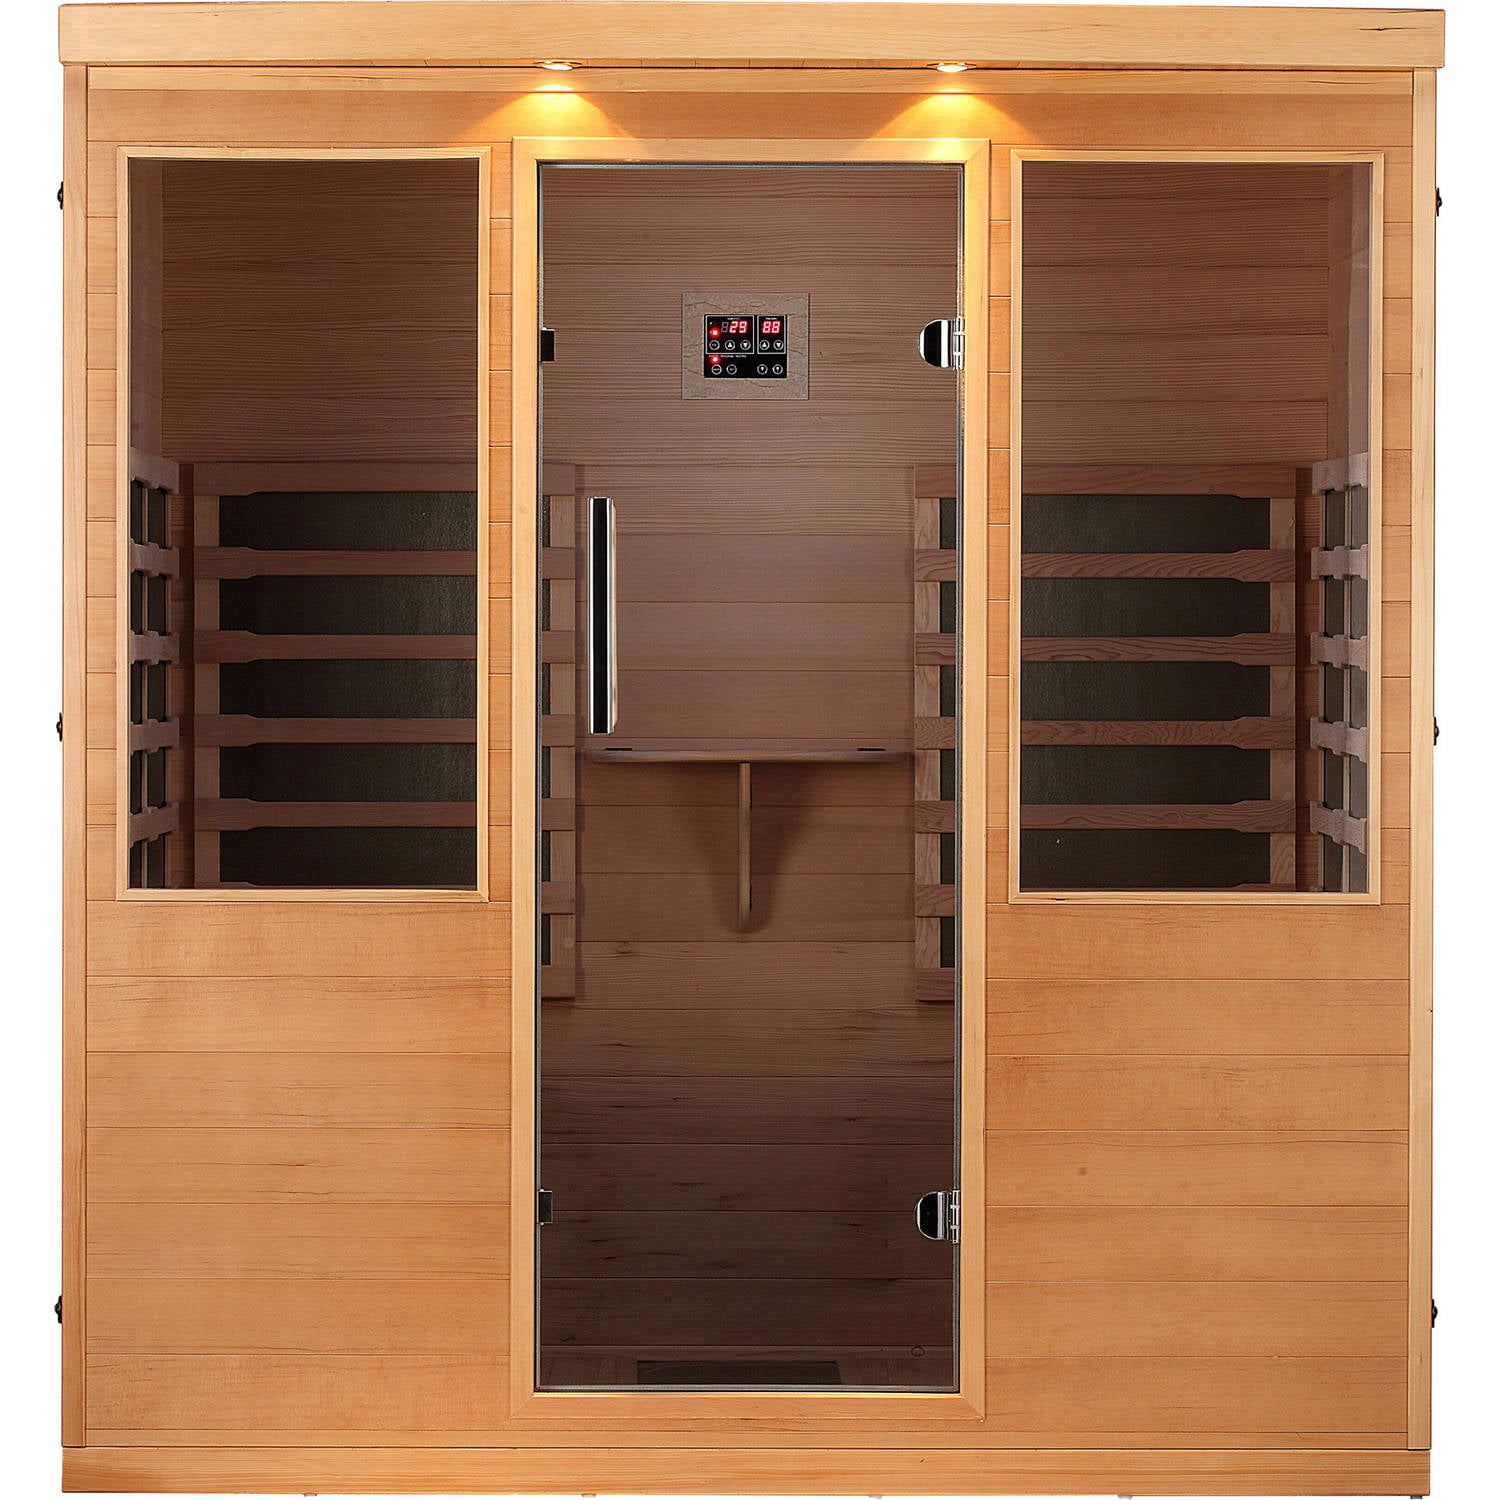 Canadian Spa Co. Whistler 4-Person Far Infrared Sauna by Canadian Spa Company